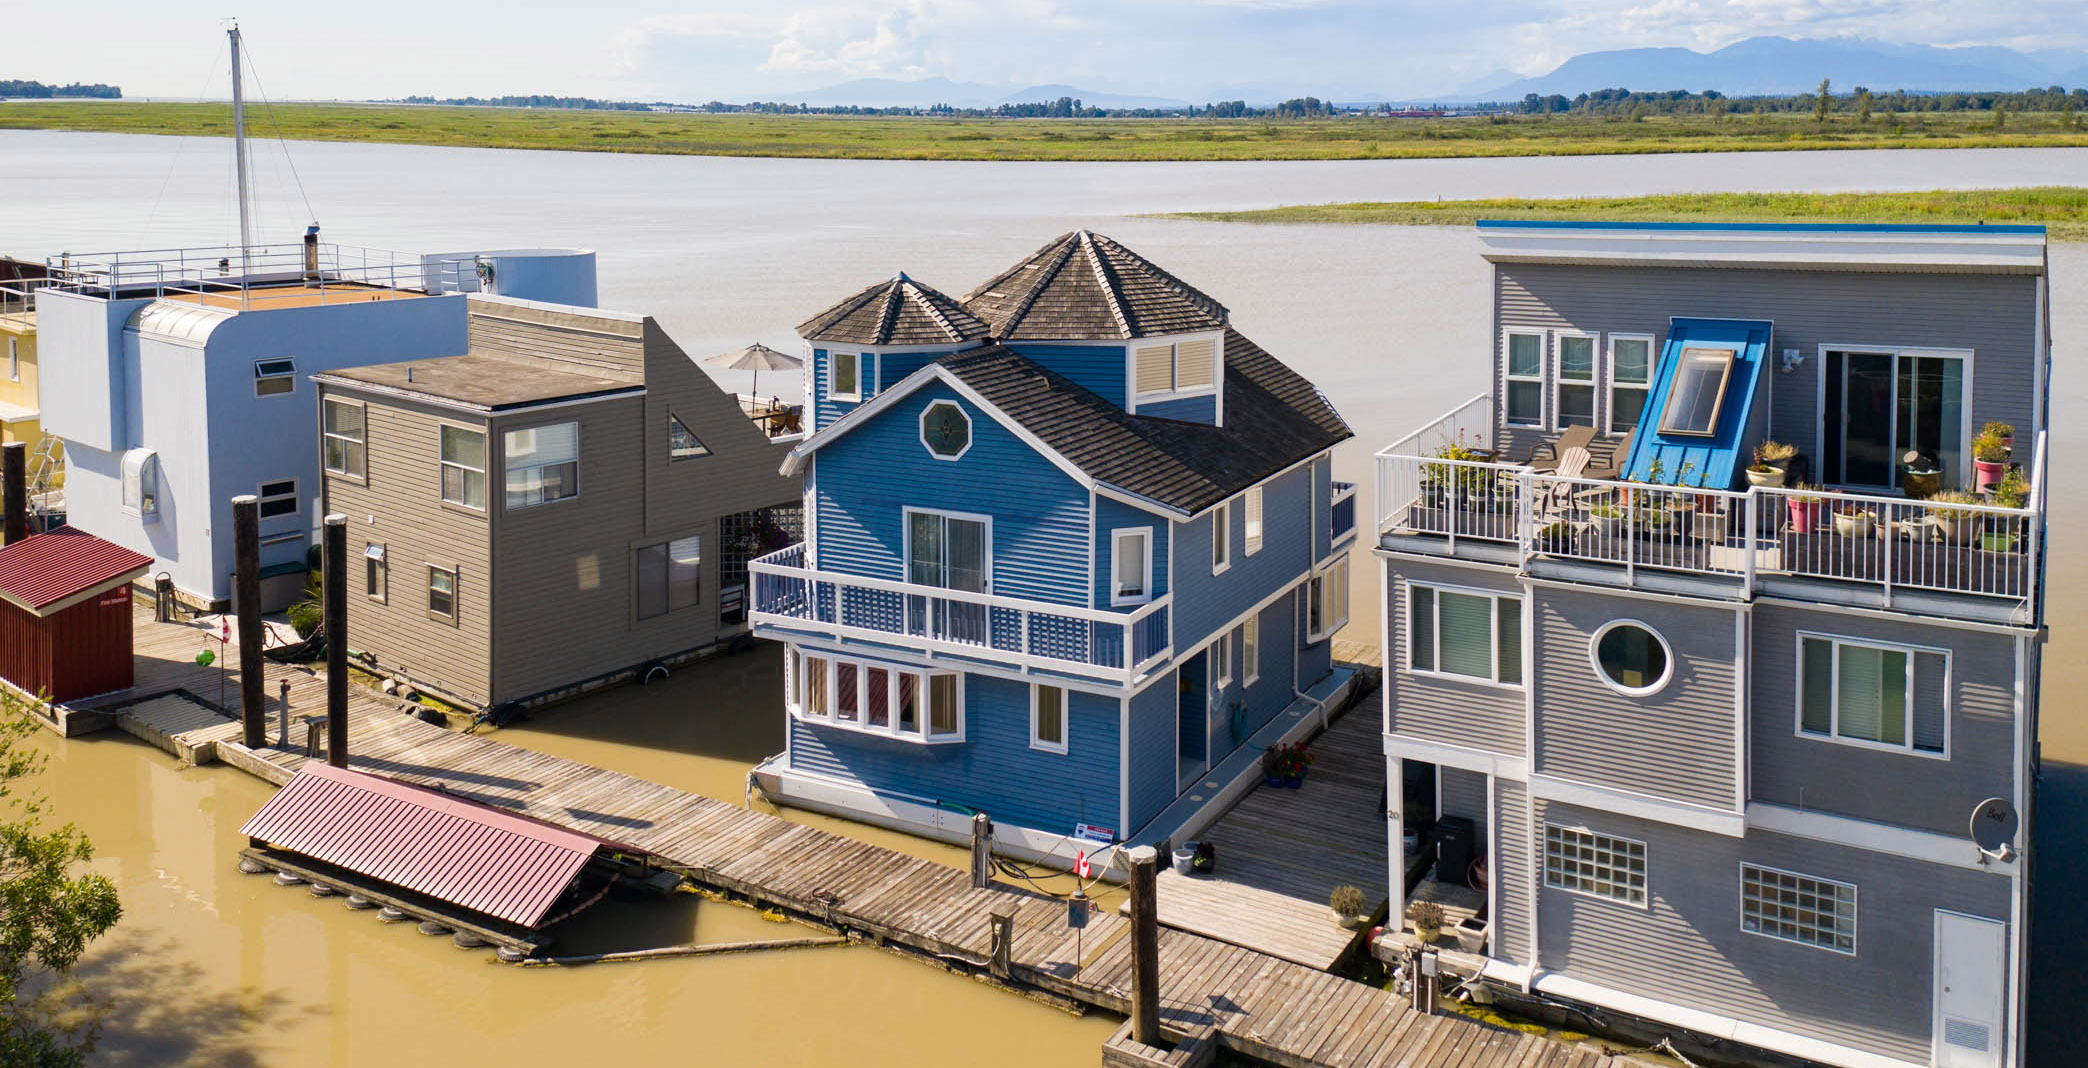 You can buy this floating home for the price of a one-bedroom condo in Vancouver (VIDEO)